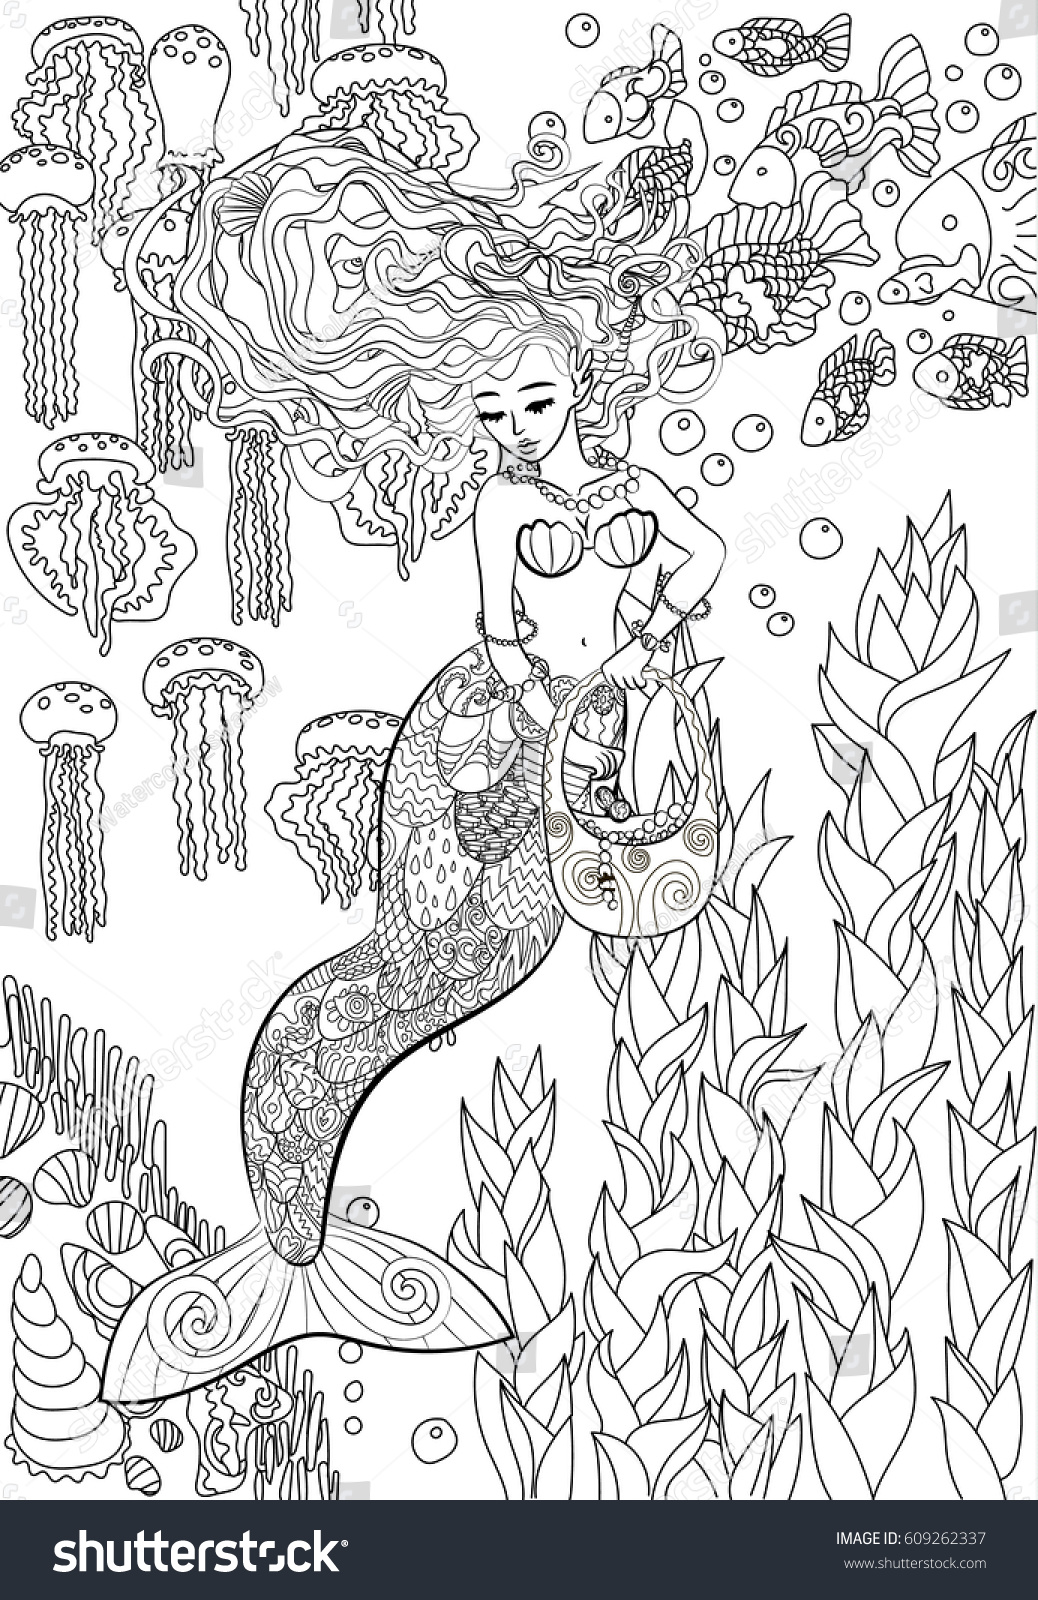 Patterned Illustration Of A Mermaid In The Zentangle Style Drawing With Beautiful Underwater Girl